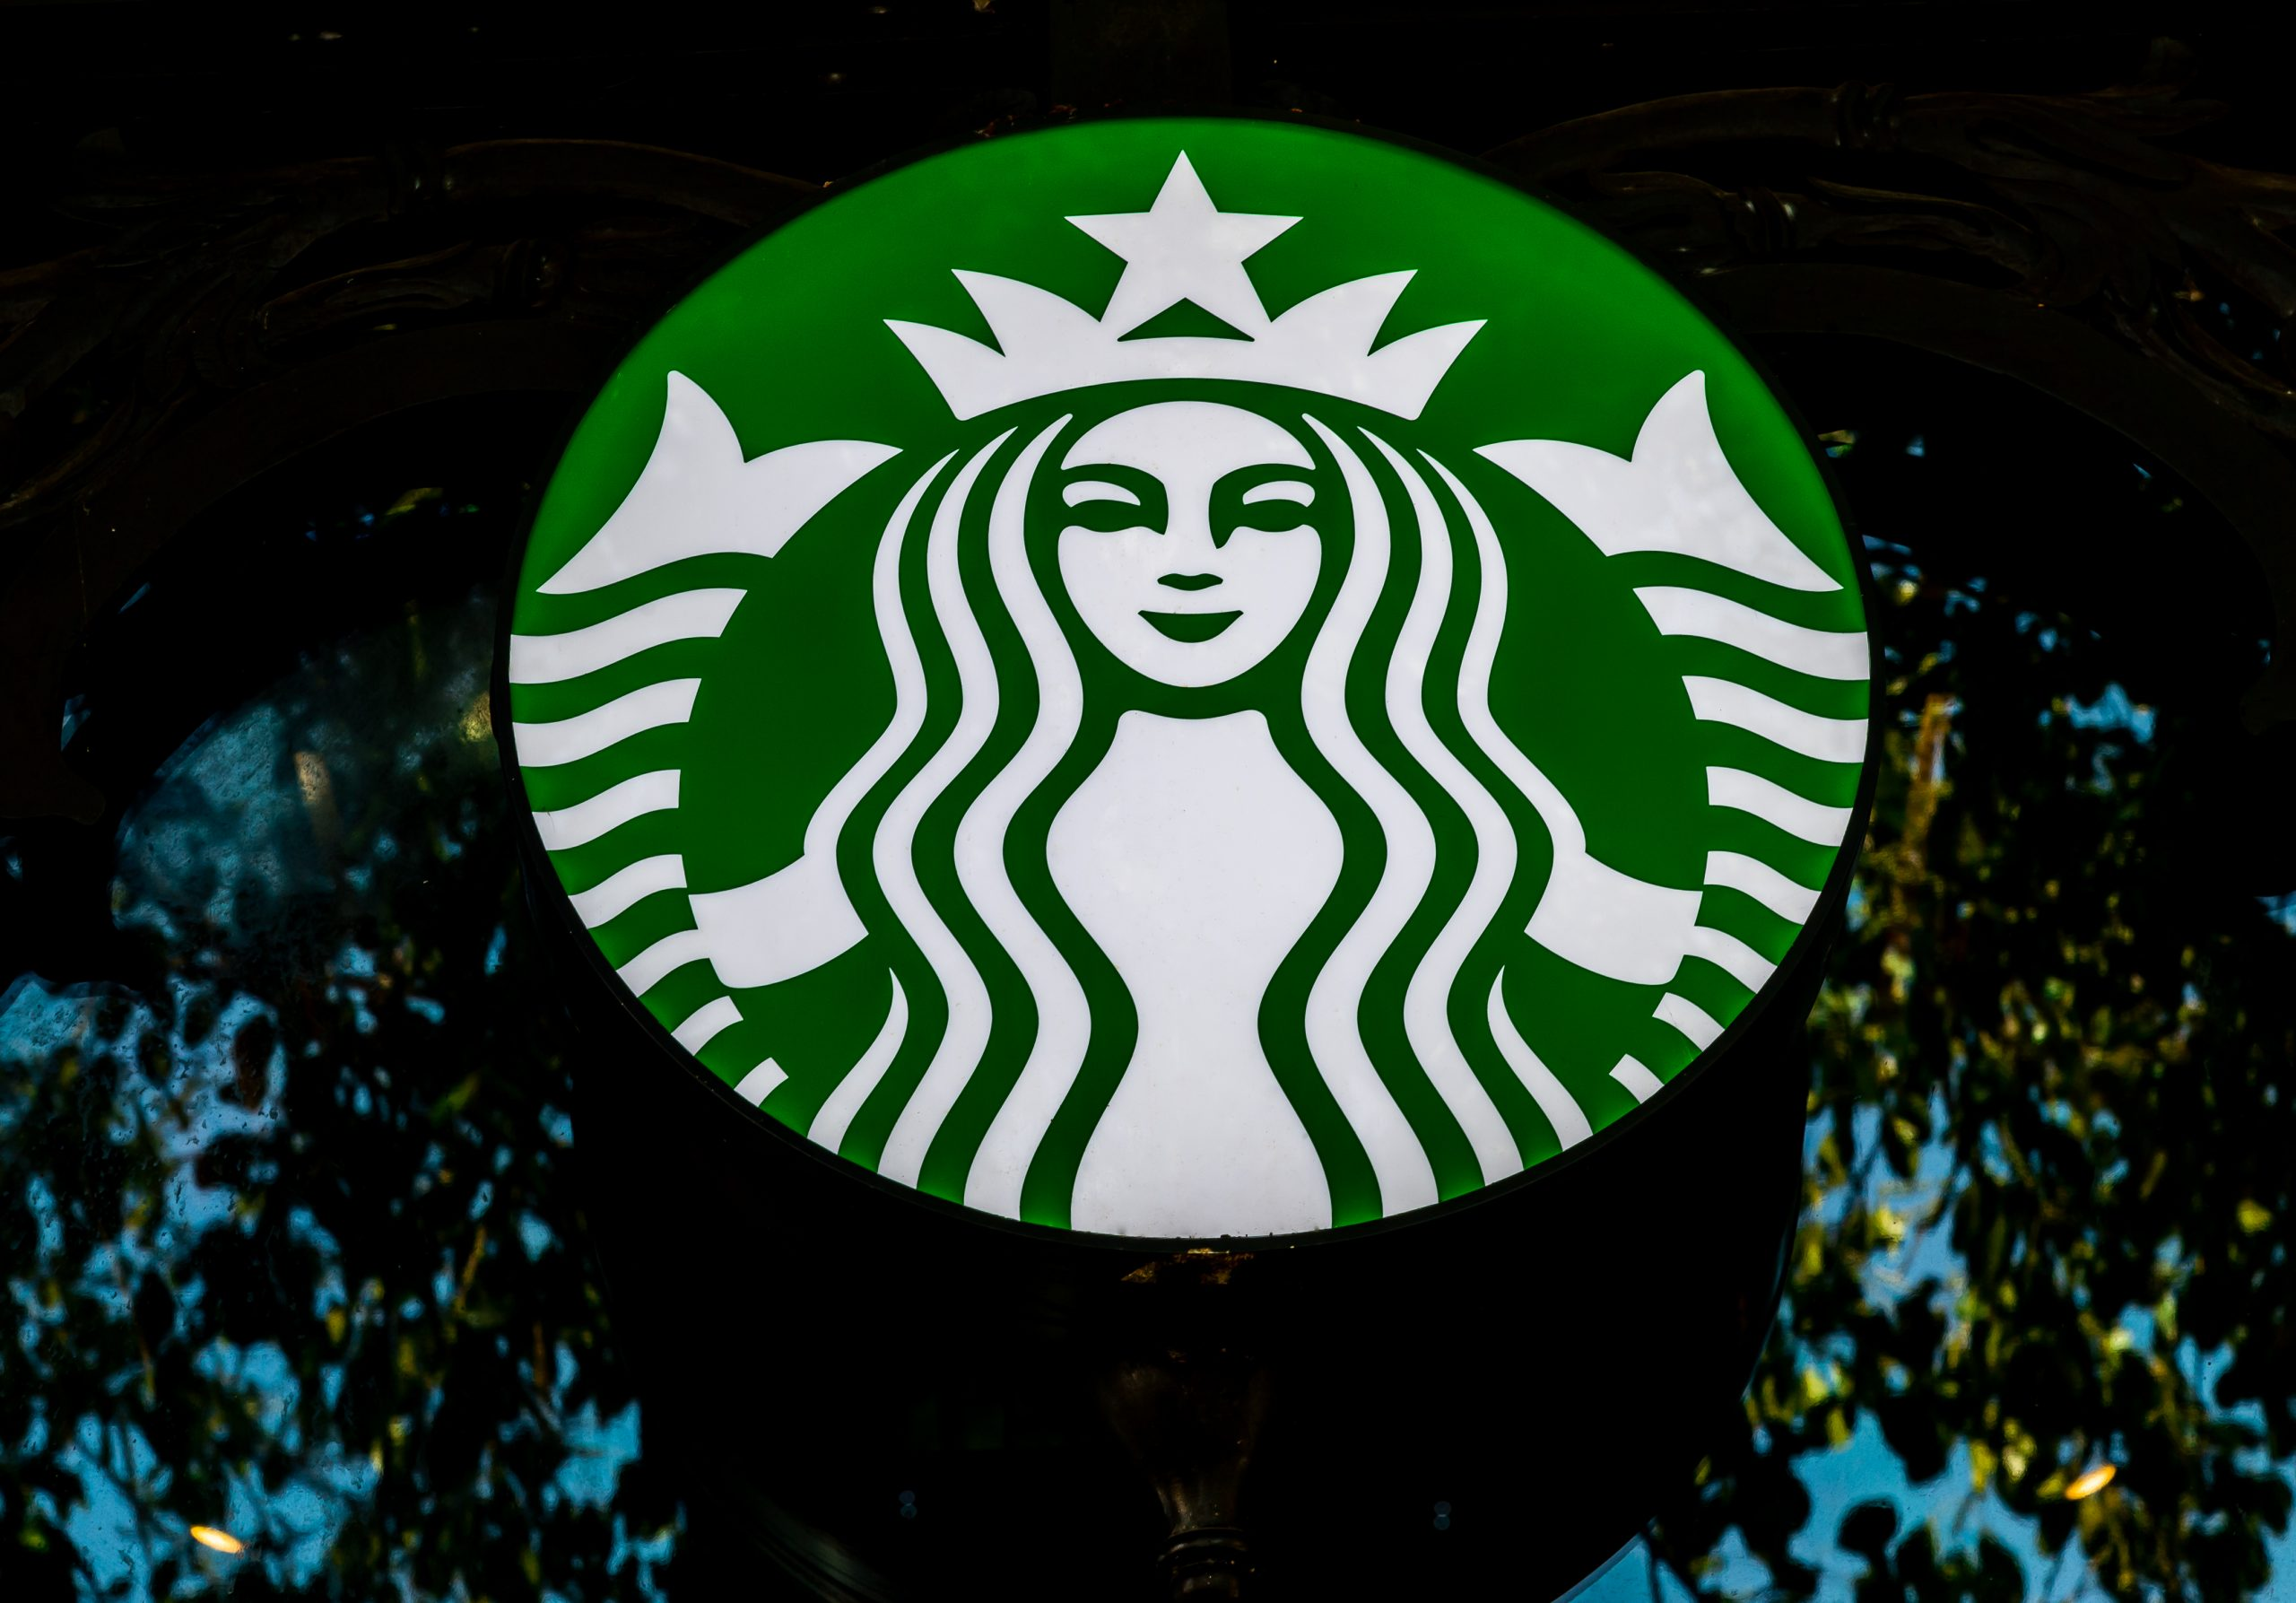 A Starbucks on every corner? Twenty two thousand new outlets planned